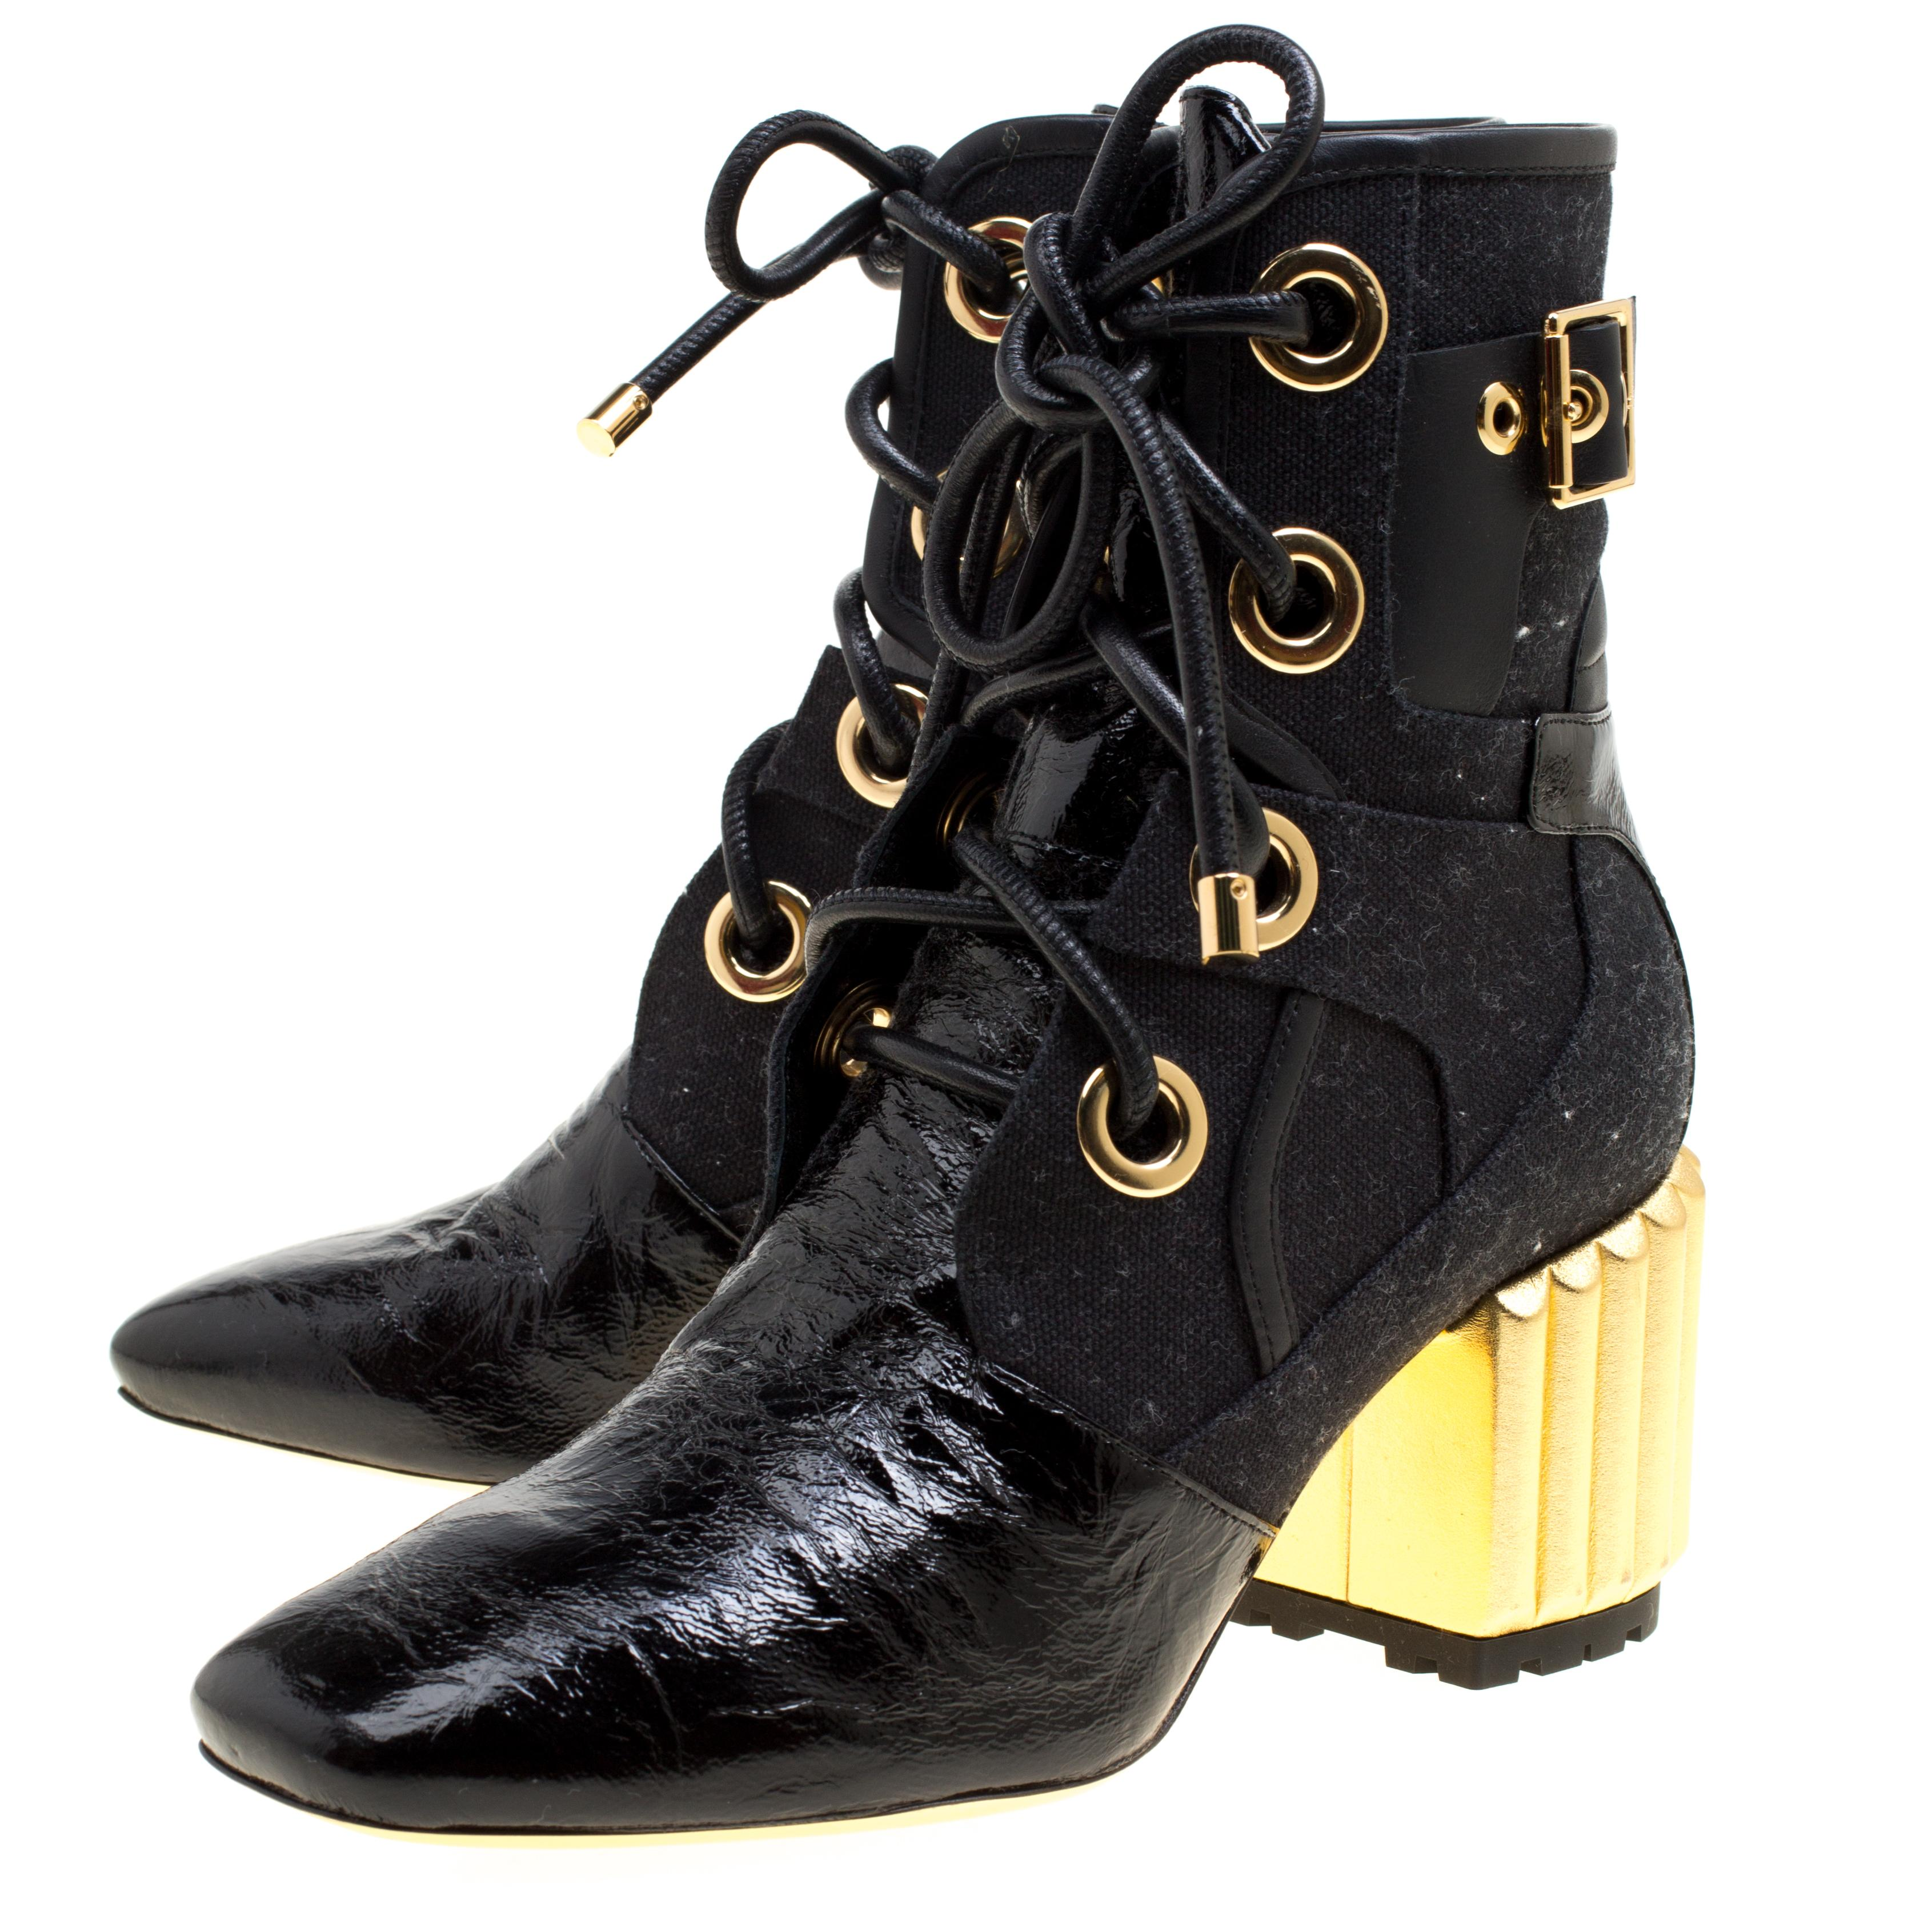 3711c87eb01c4 Dior Black Canvas and Crinkled Leather Sculpted Block Heel Ankle Boots Size  35.5 For Sale at 1stdibs